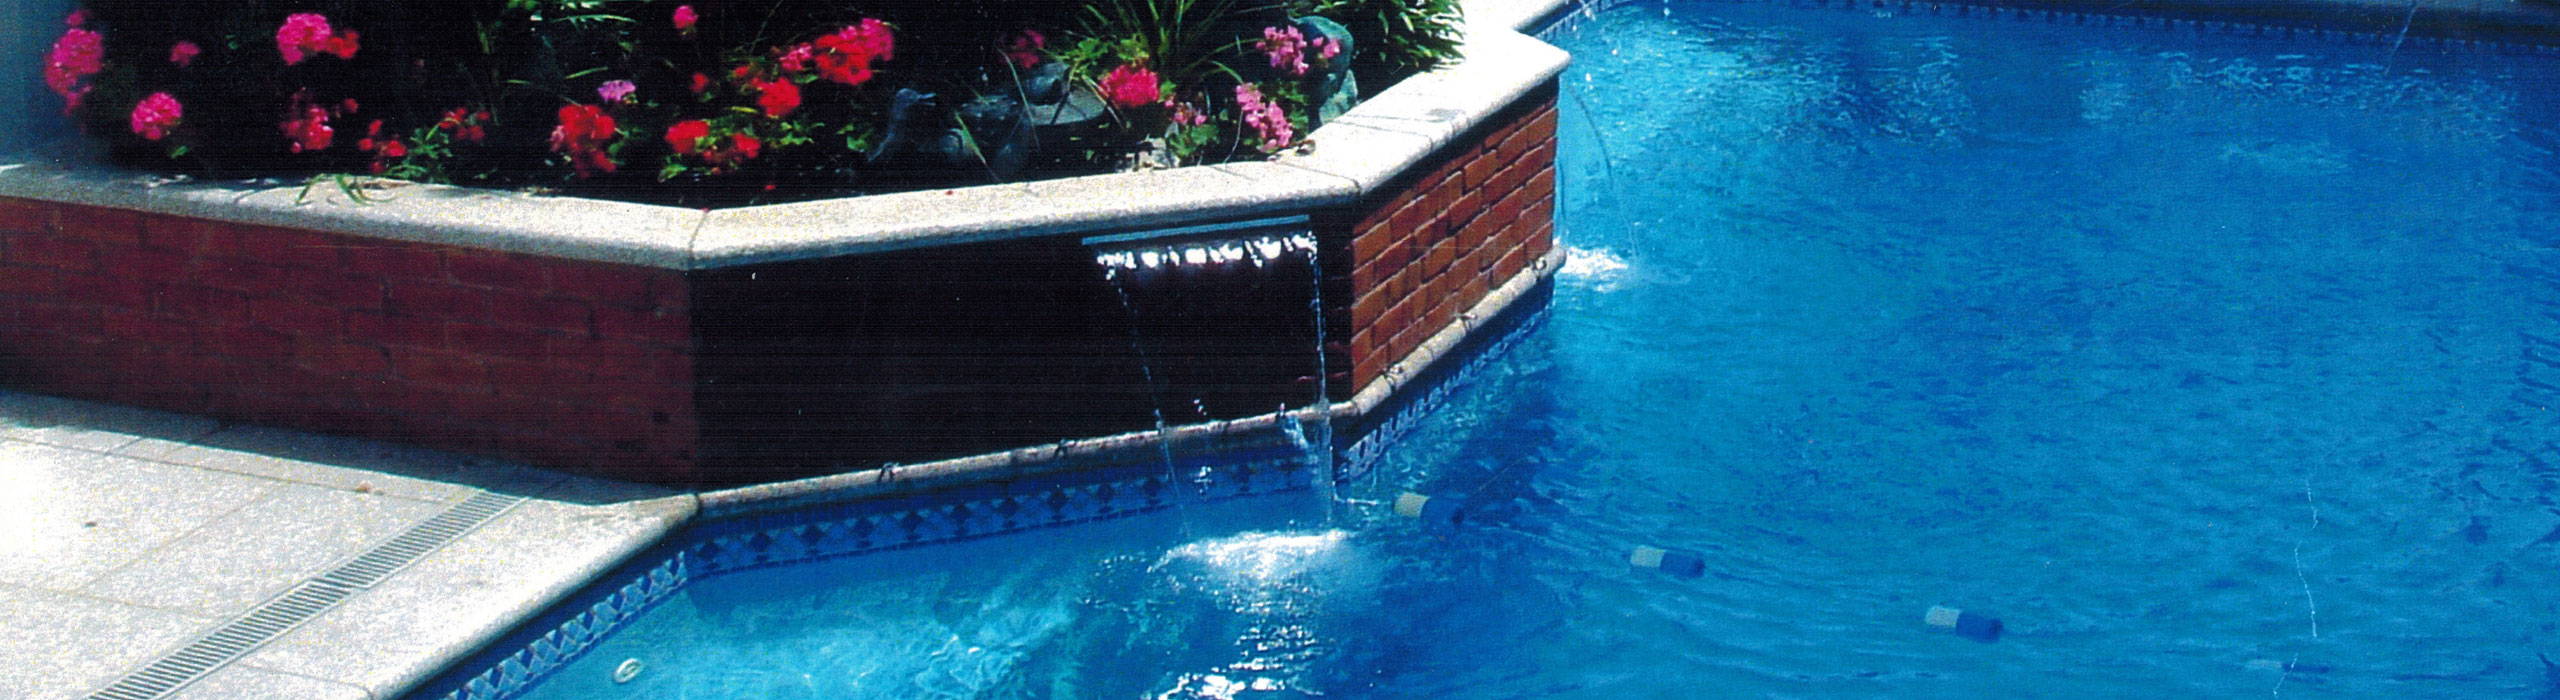 Clearwater Pools - In-Ground Pools - Clearwater Pools